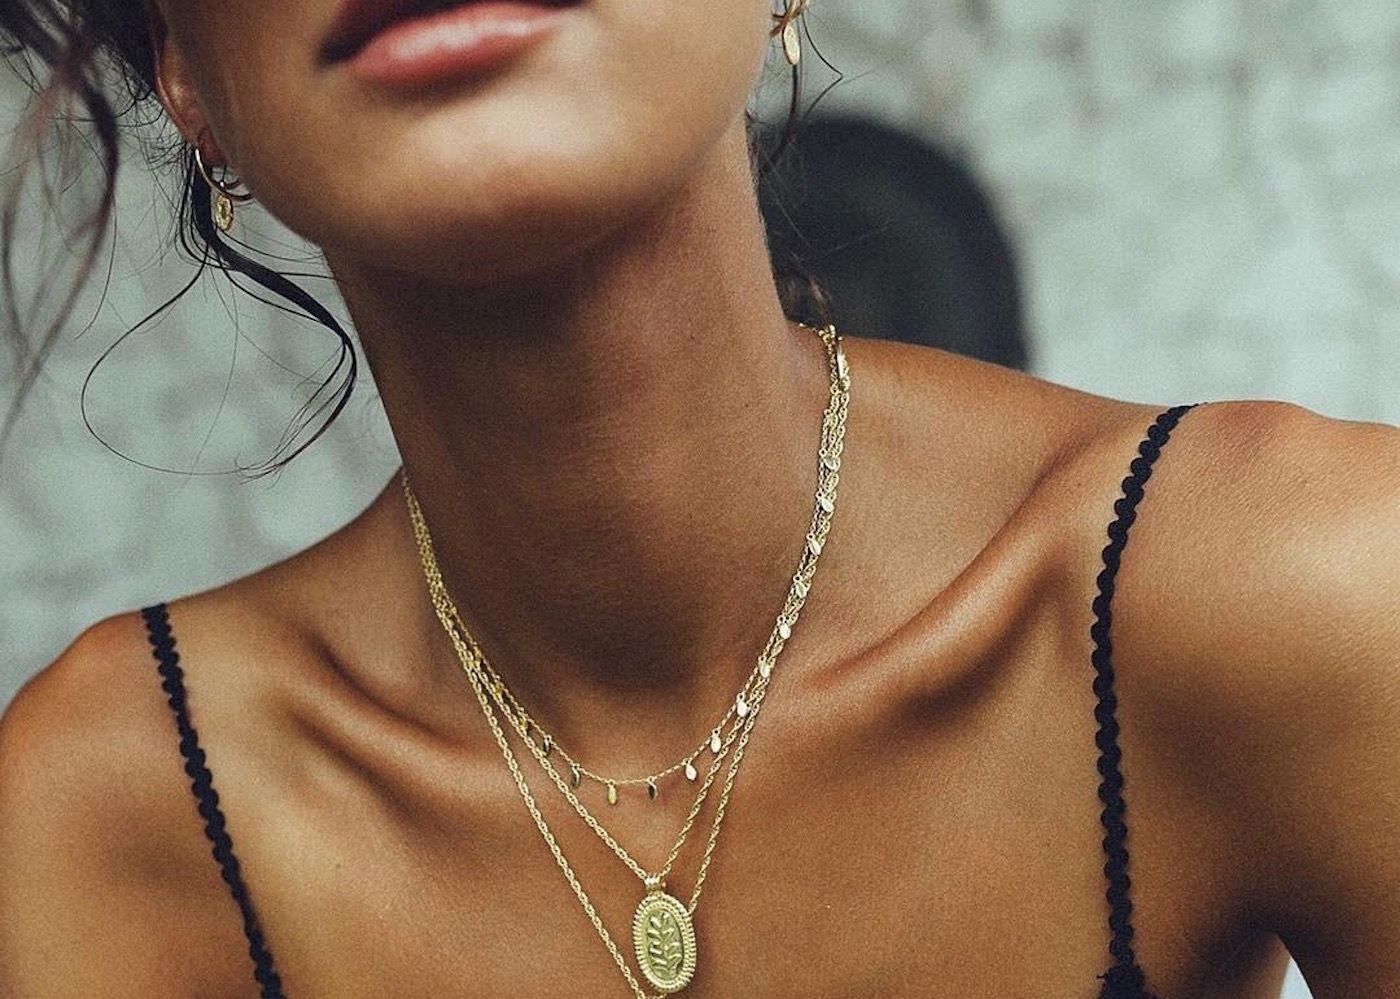 Model wearing Wildthings gold jewellery in Bali, Indonesia